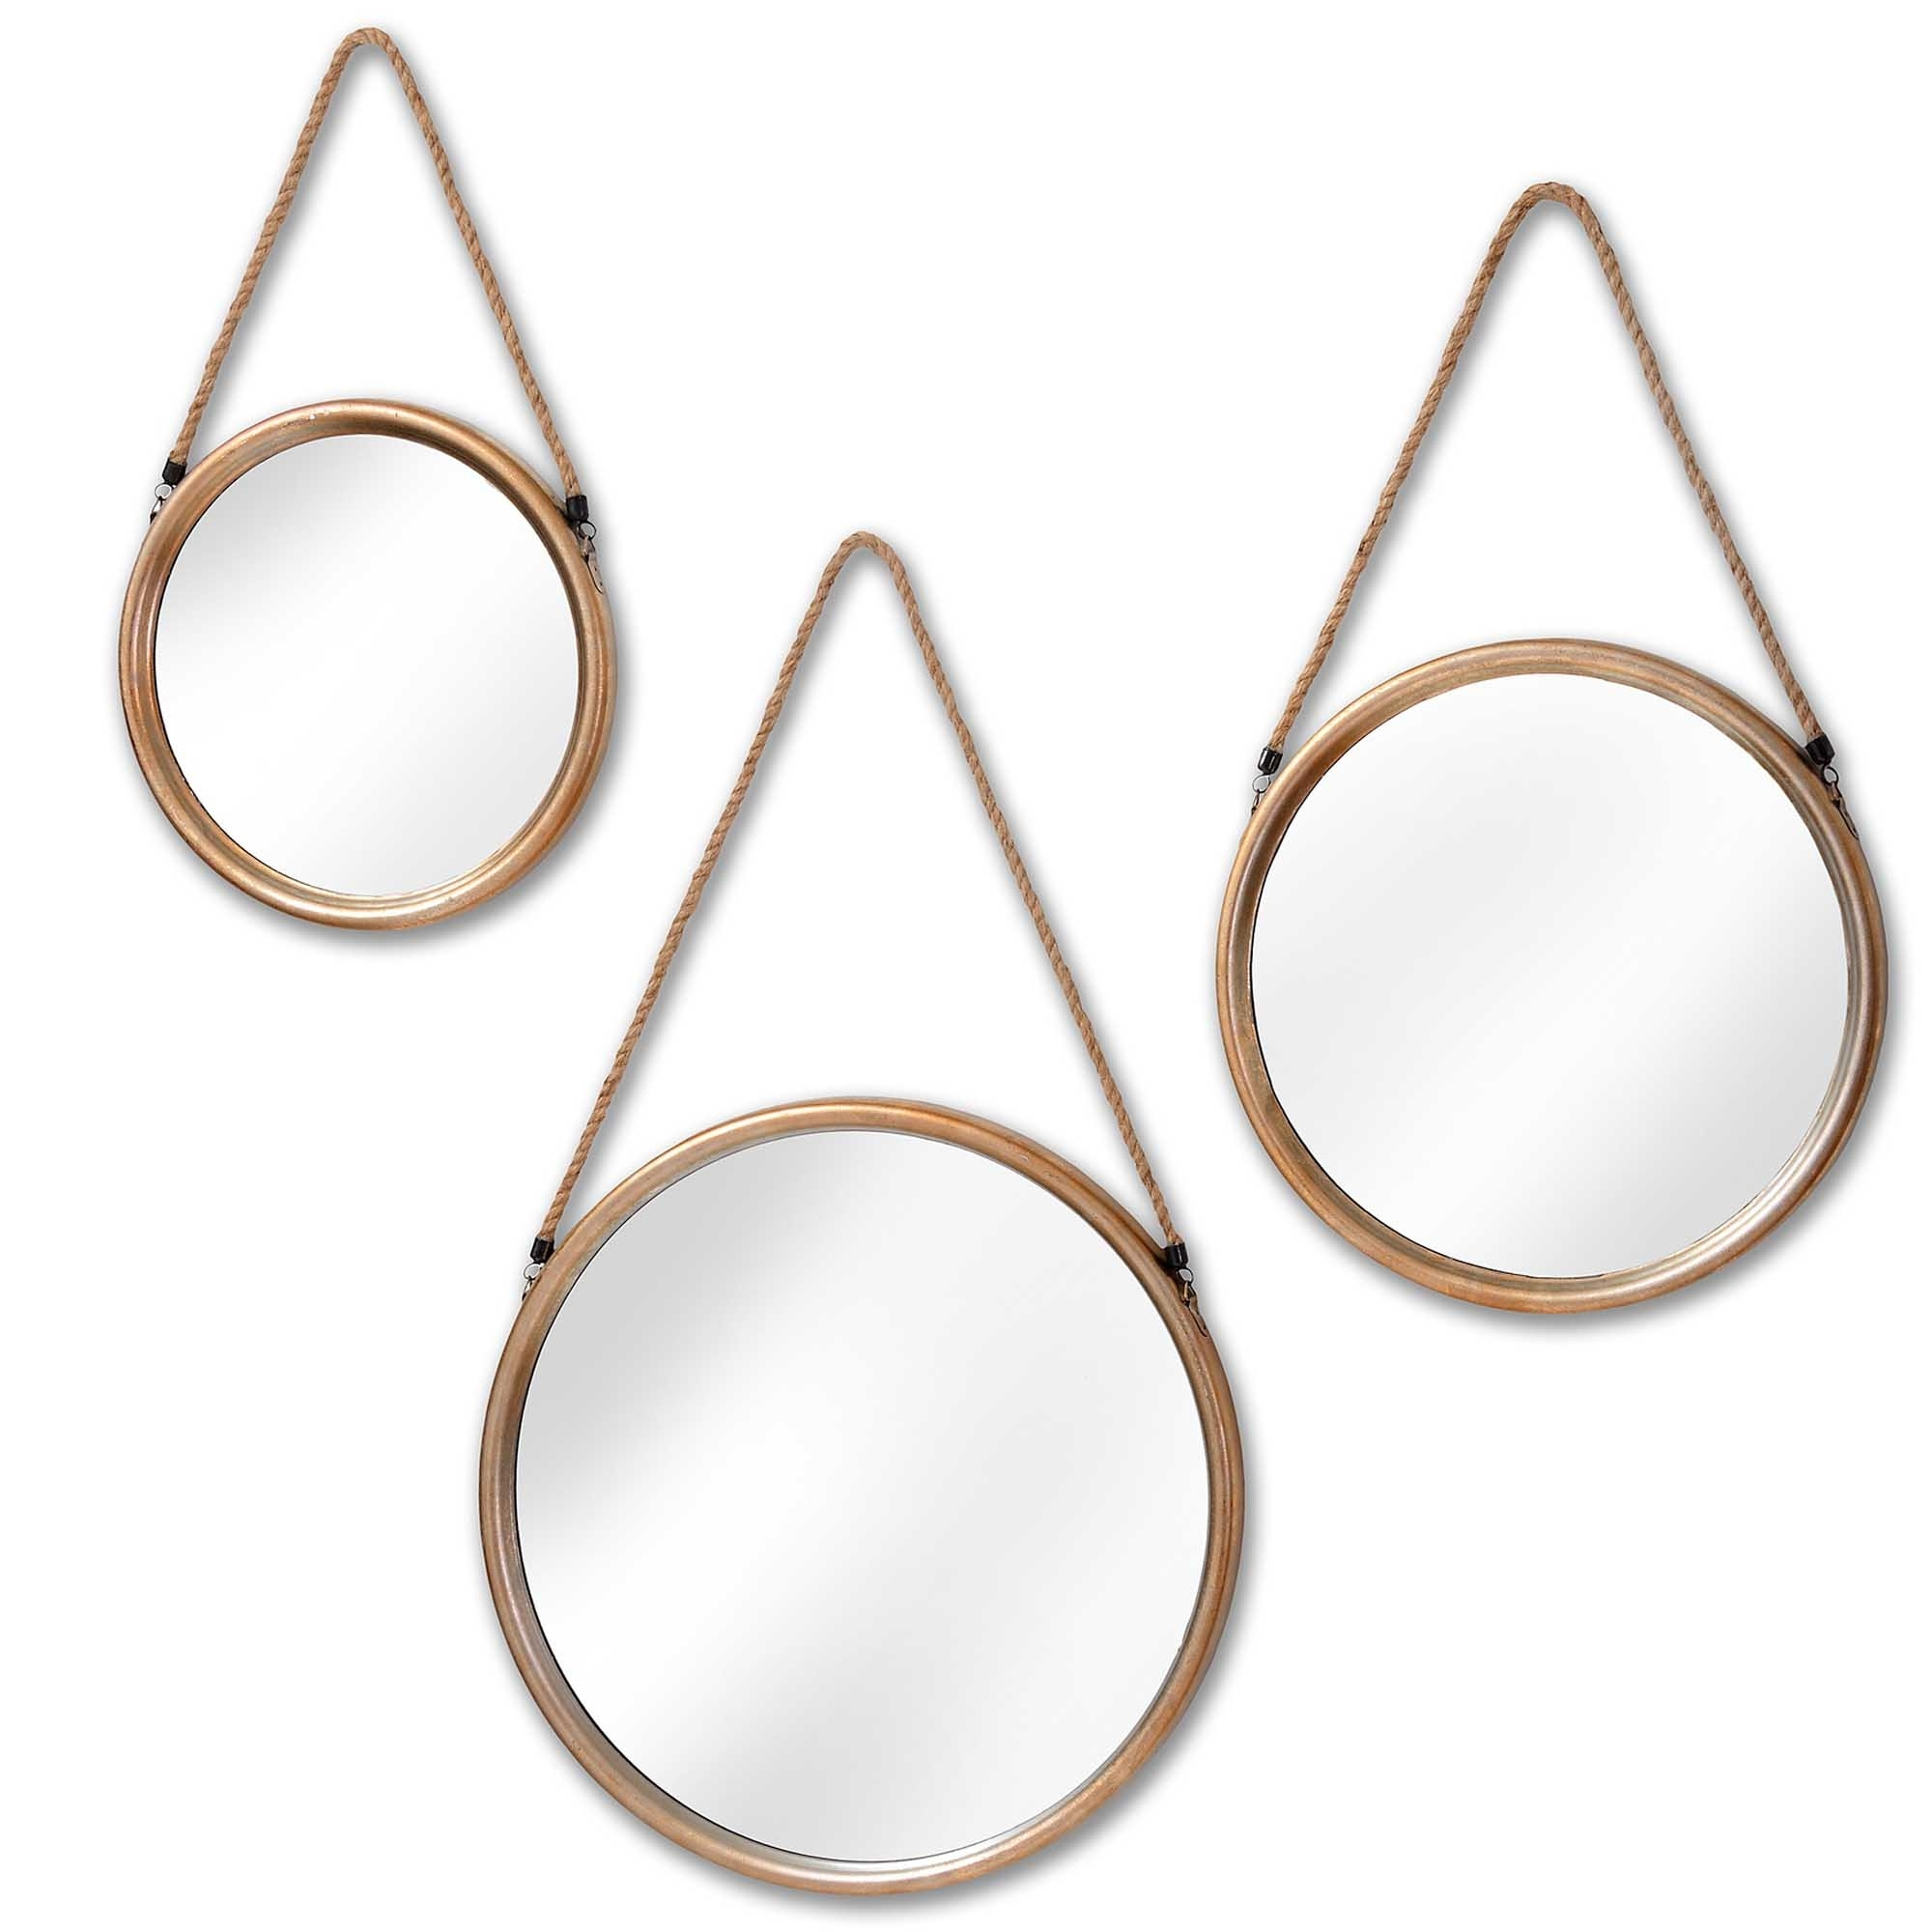 Set of 3 Hanging Round Gold Wall Mirrors | Decor ...